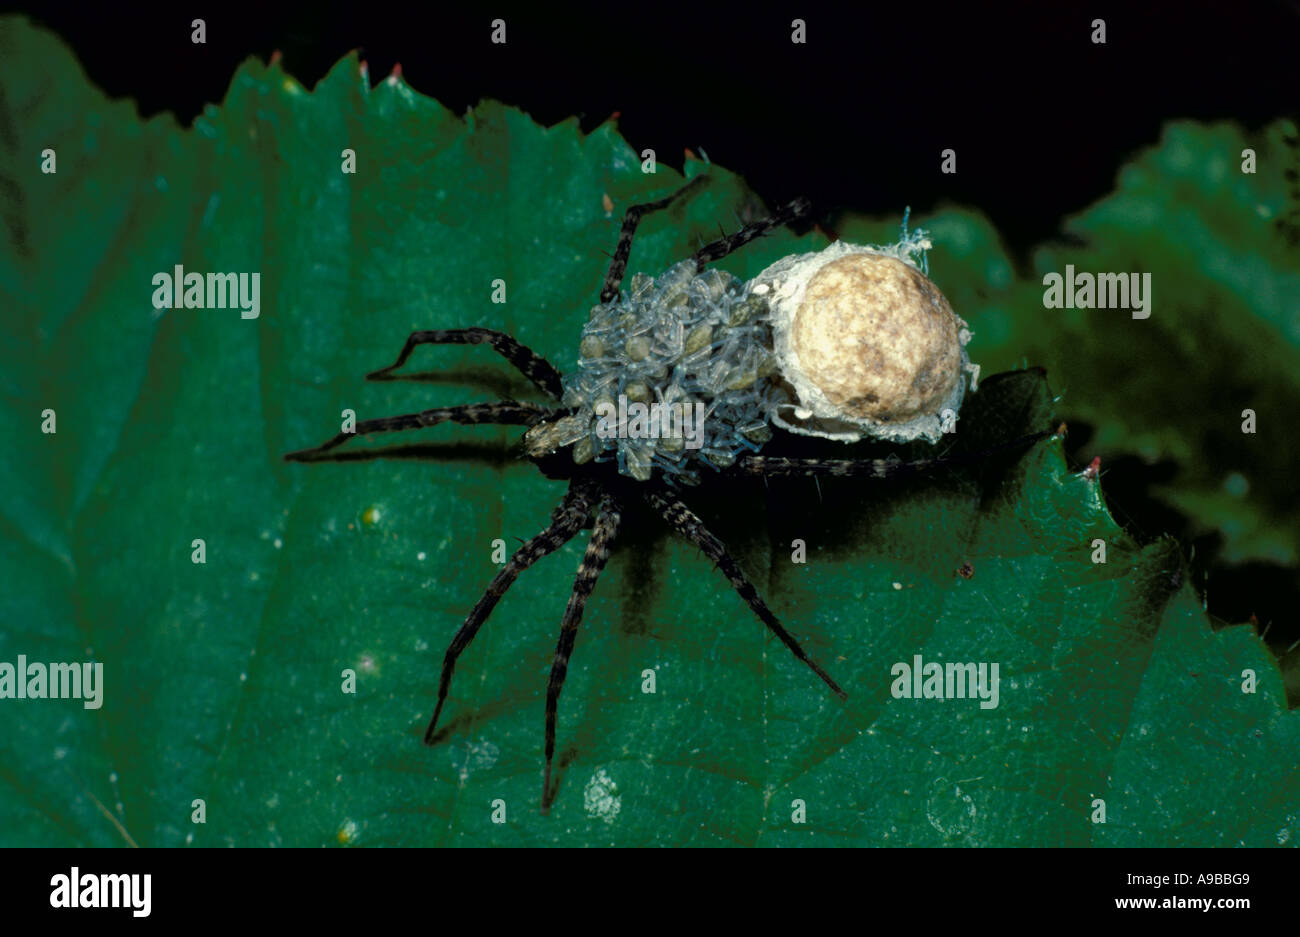 Wolf Spider Pardosa amentata with egg sac and young on back United Kingdom - Stock Image